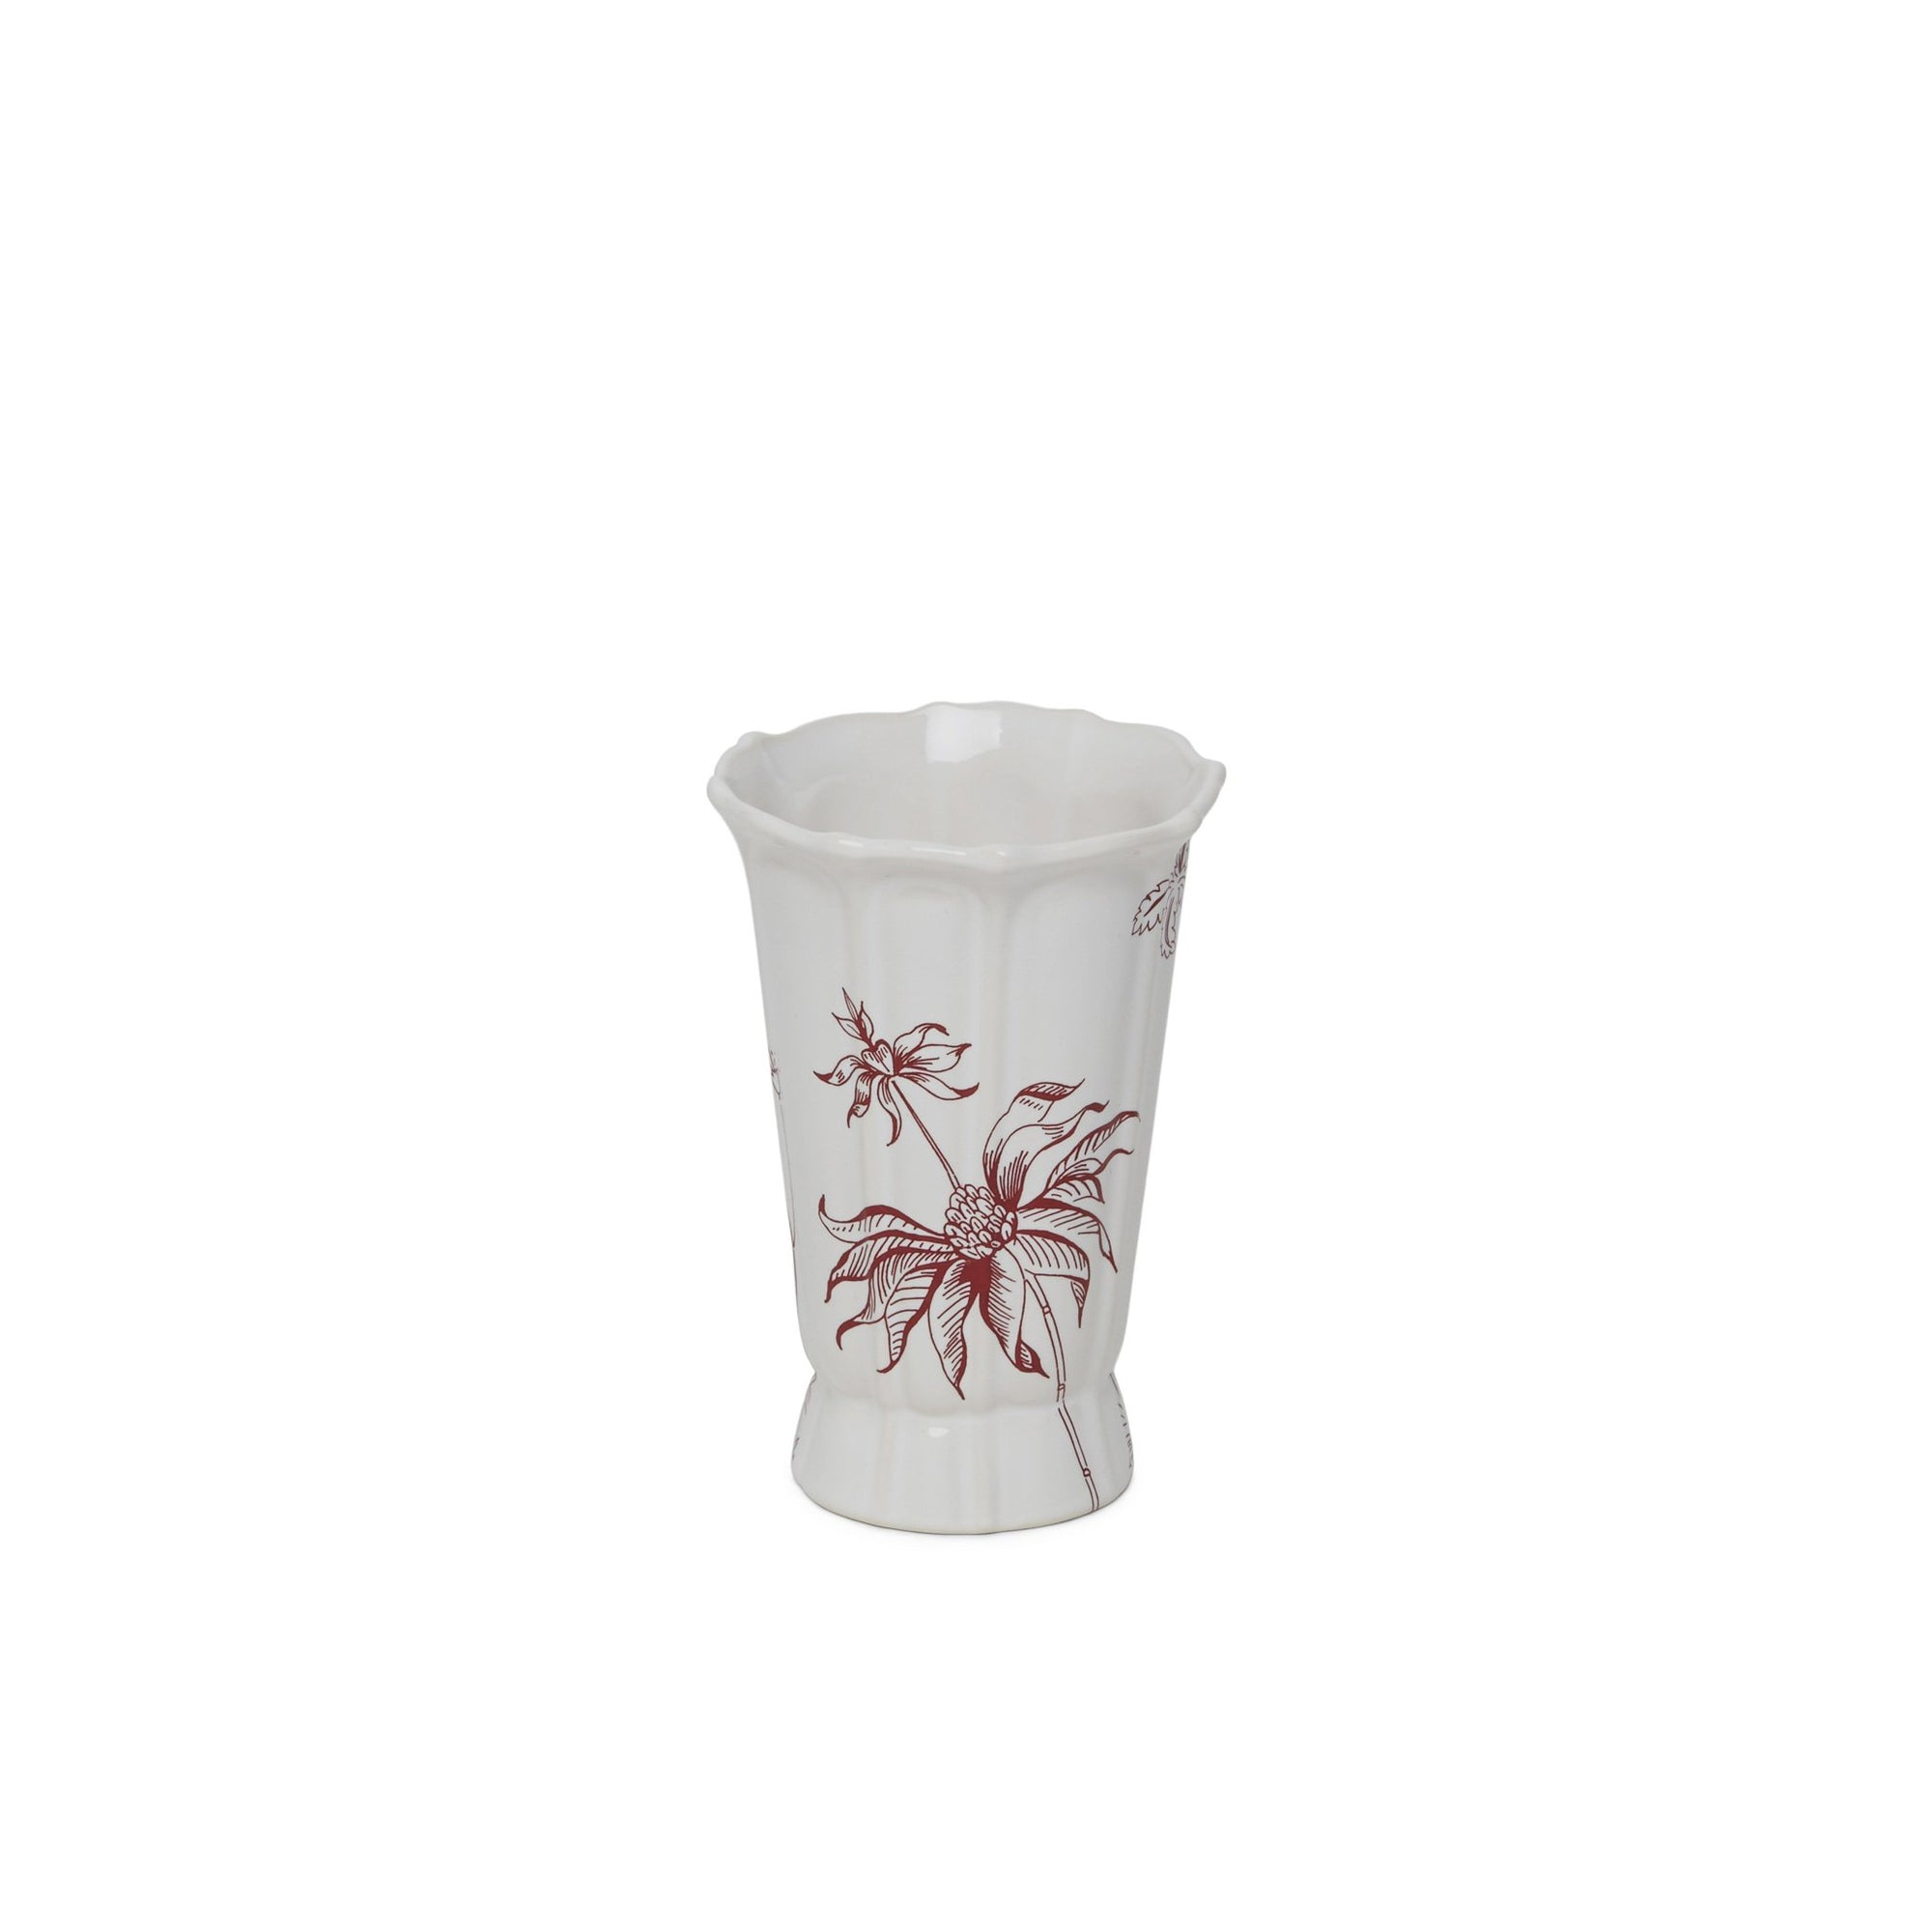 3367-OE3-89GA-WH Sherle Wagner International Ceramic Tumbler with Le Jardin Garnet on White